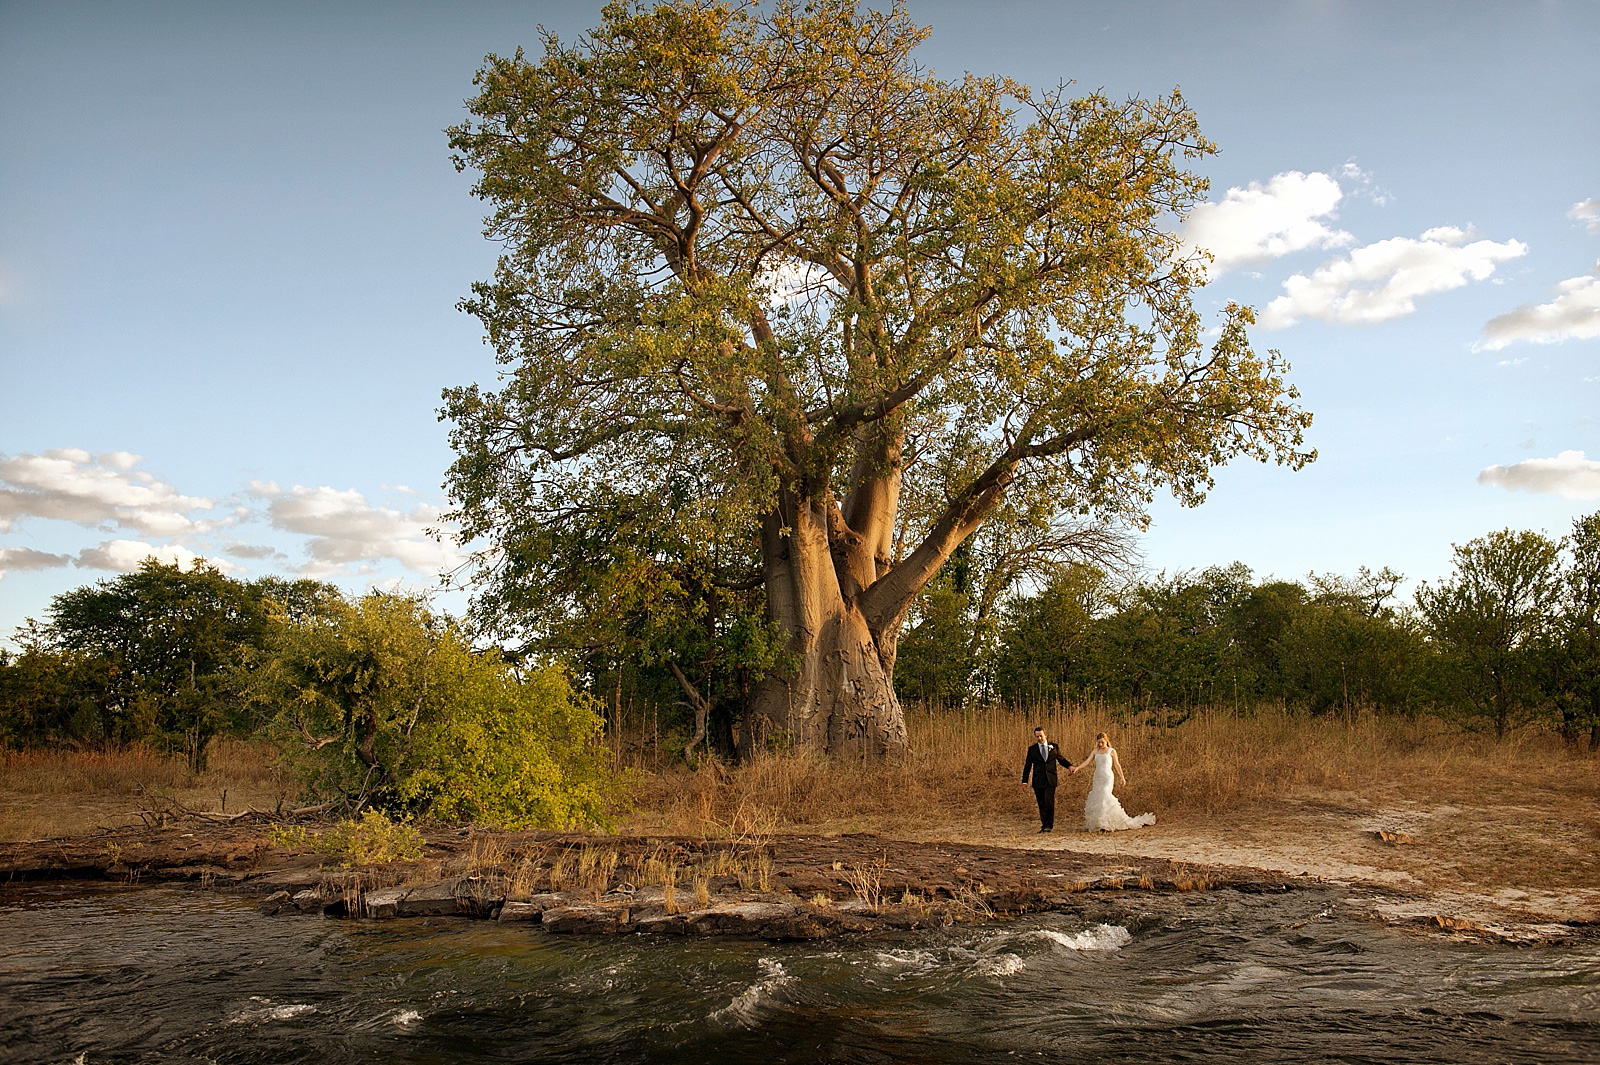 Creative wedding photography at South African bush wedding , photographed by top South African wedding photographer Jacki Bruniquel